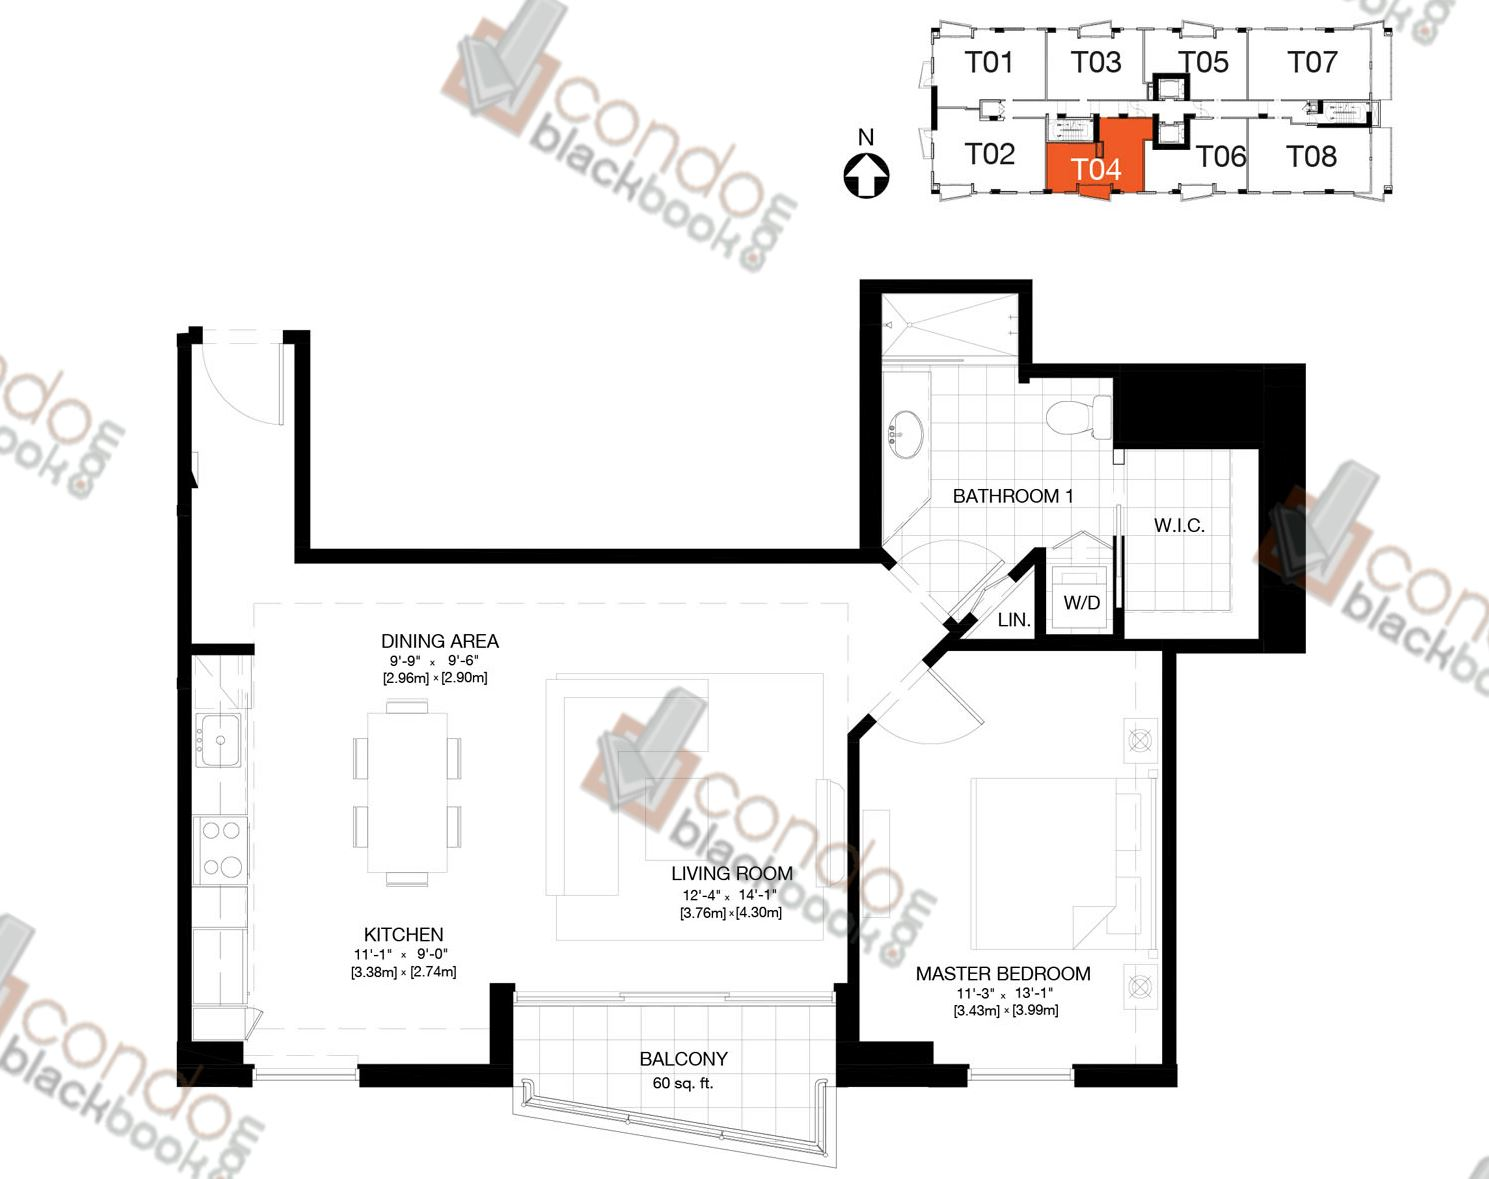 Floor plan for The Crimson Edgewater Miami, model Residence 04, line 04, 1/1+DEN bedrooms, 827 sq ft